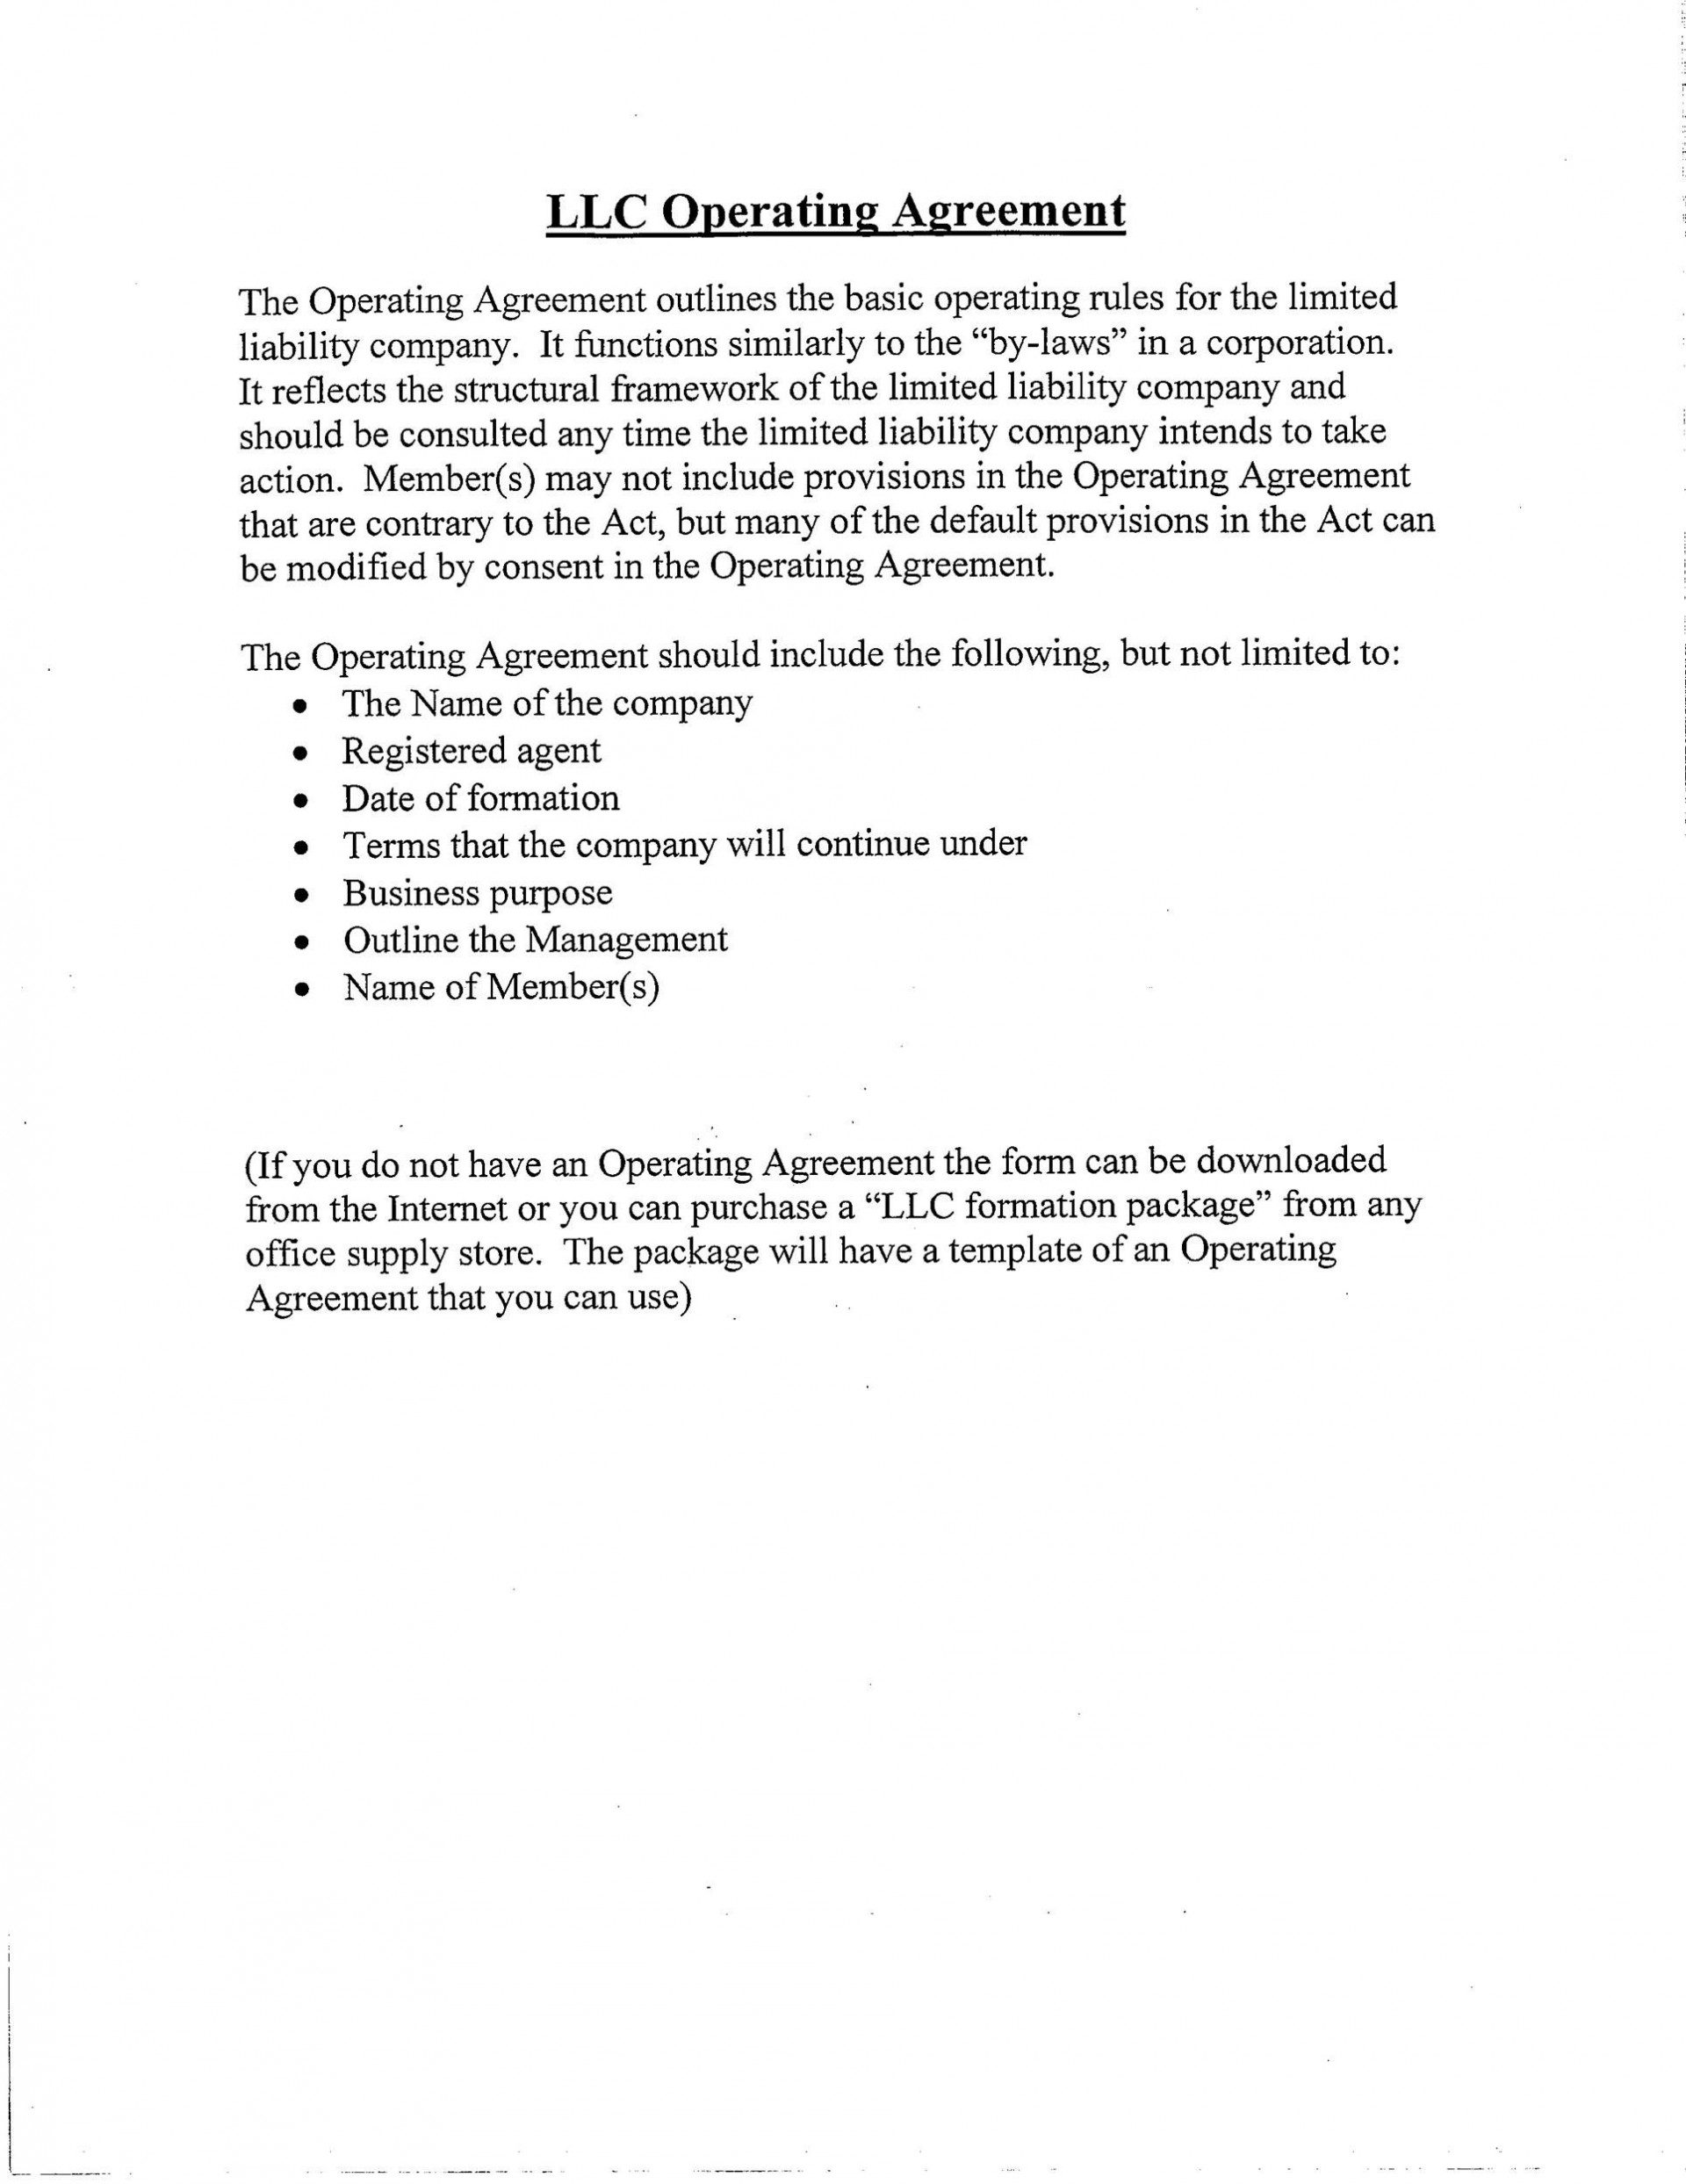 008 Striking Buy Sell Agreement Llc Template Free Picture 1920